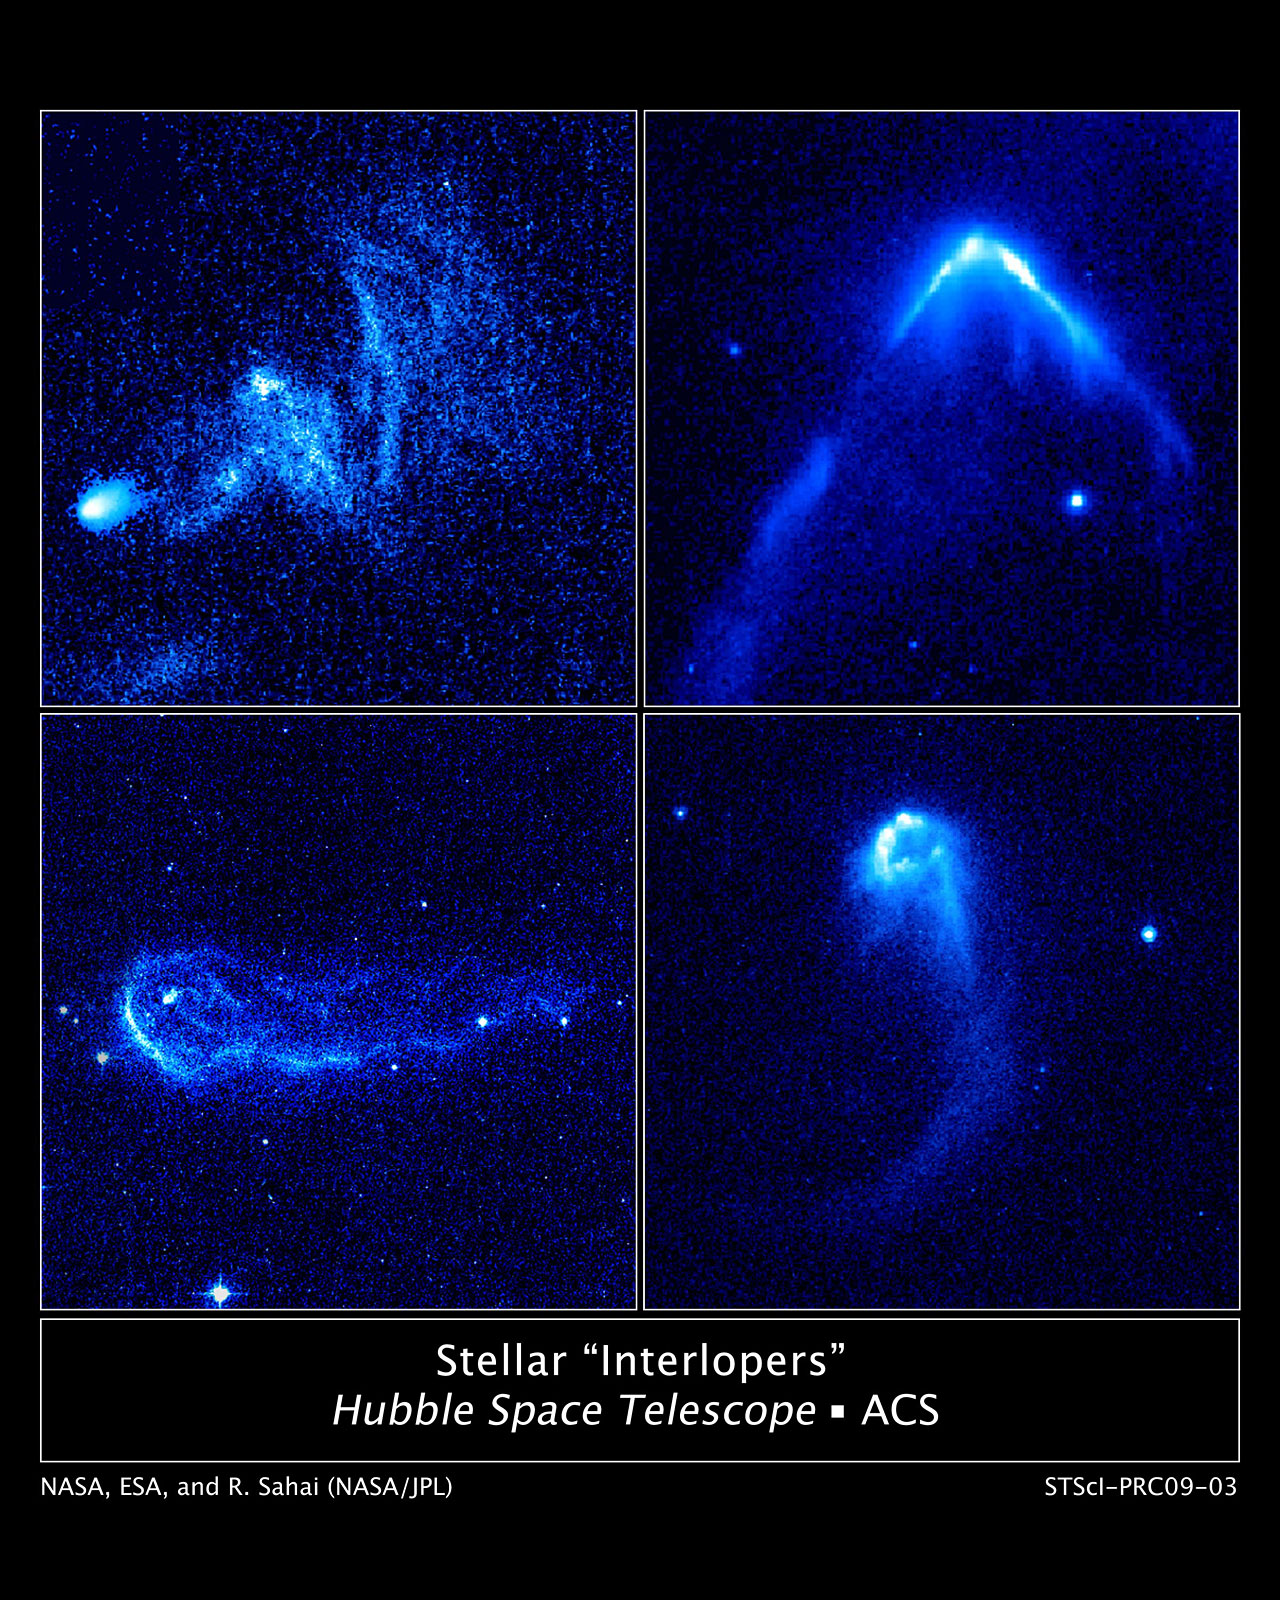 Stellar interlopers caught speeding through space